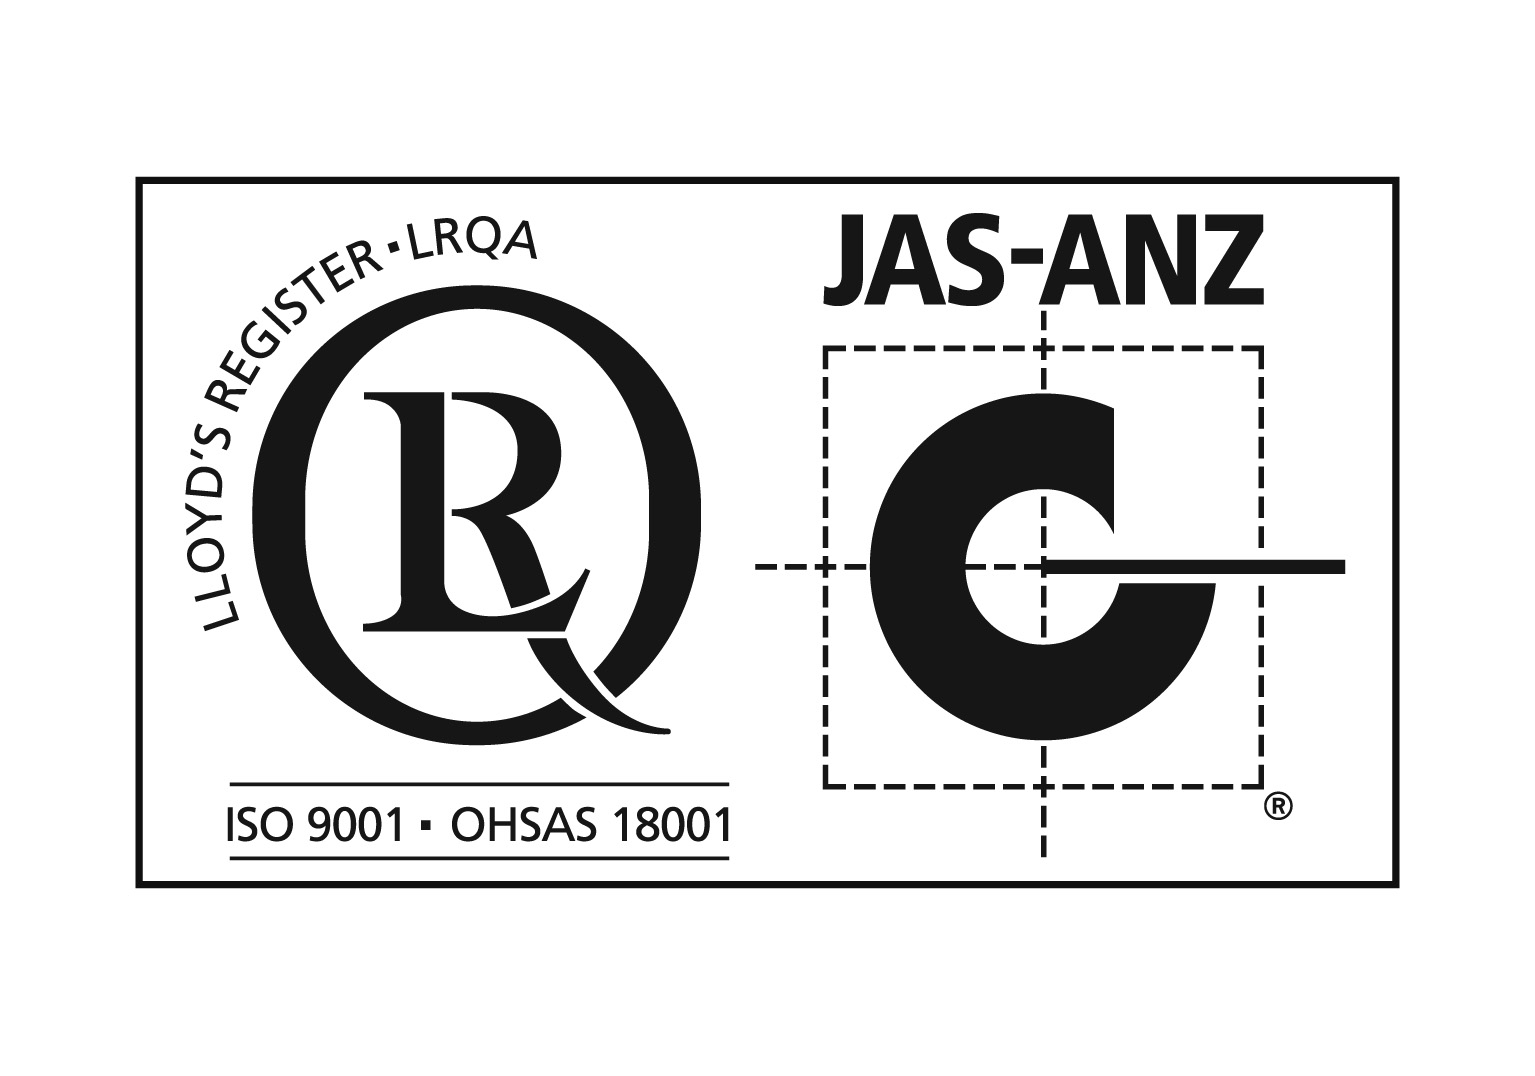 ISO9001OHSAS 18001 with JAS ANZ